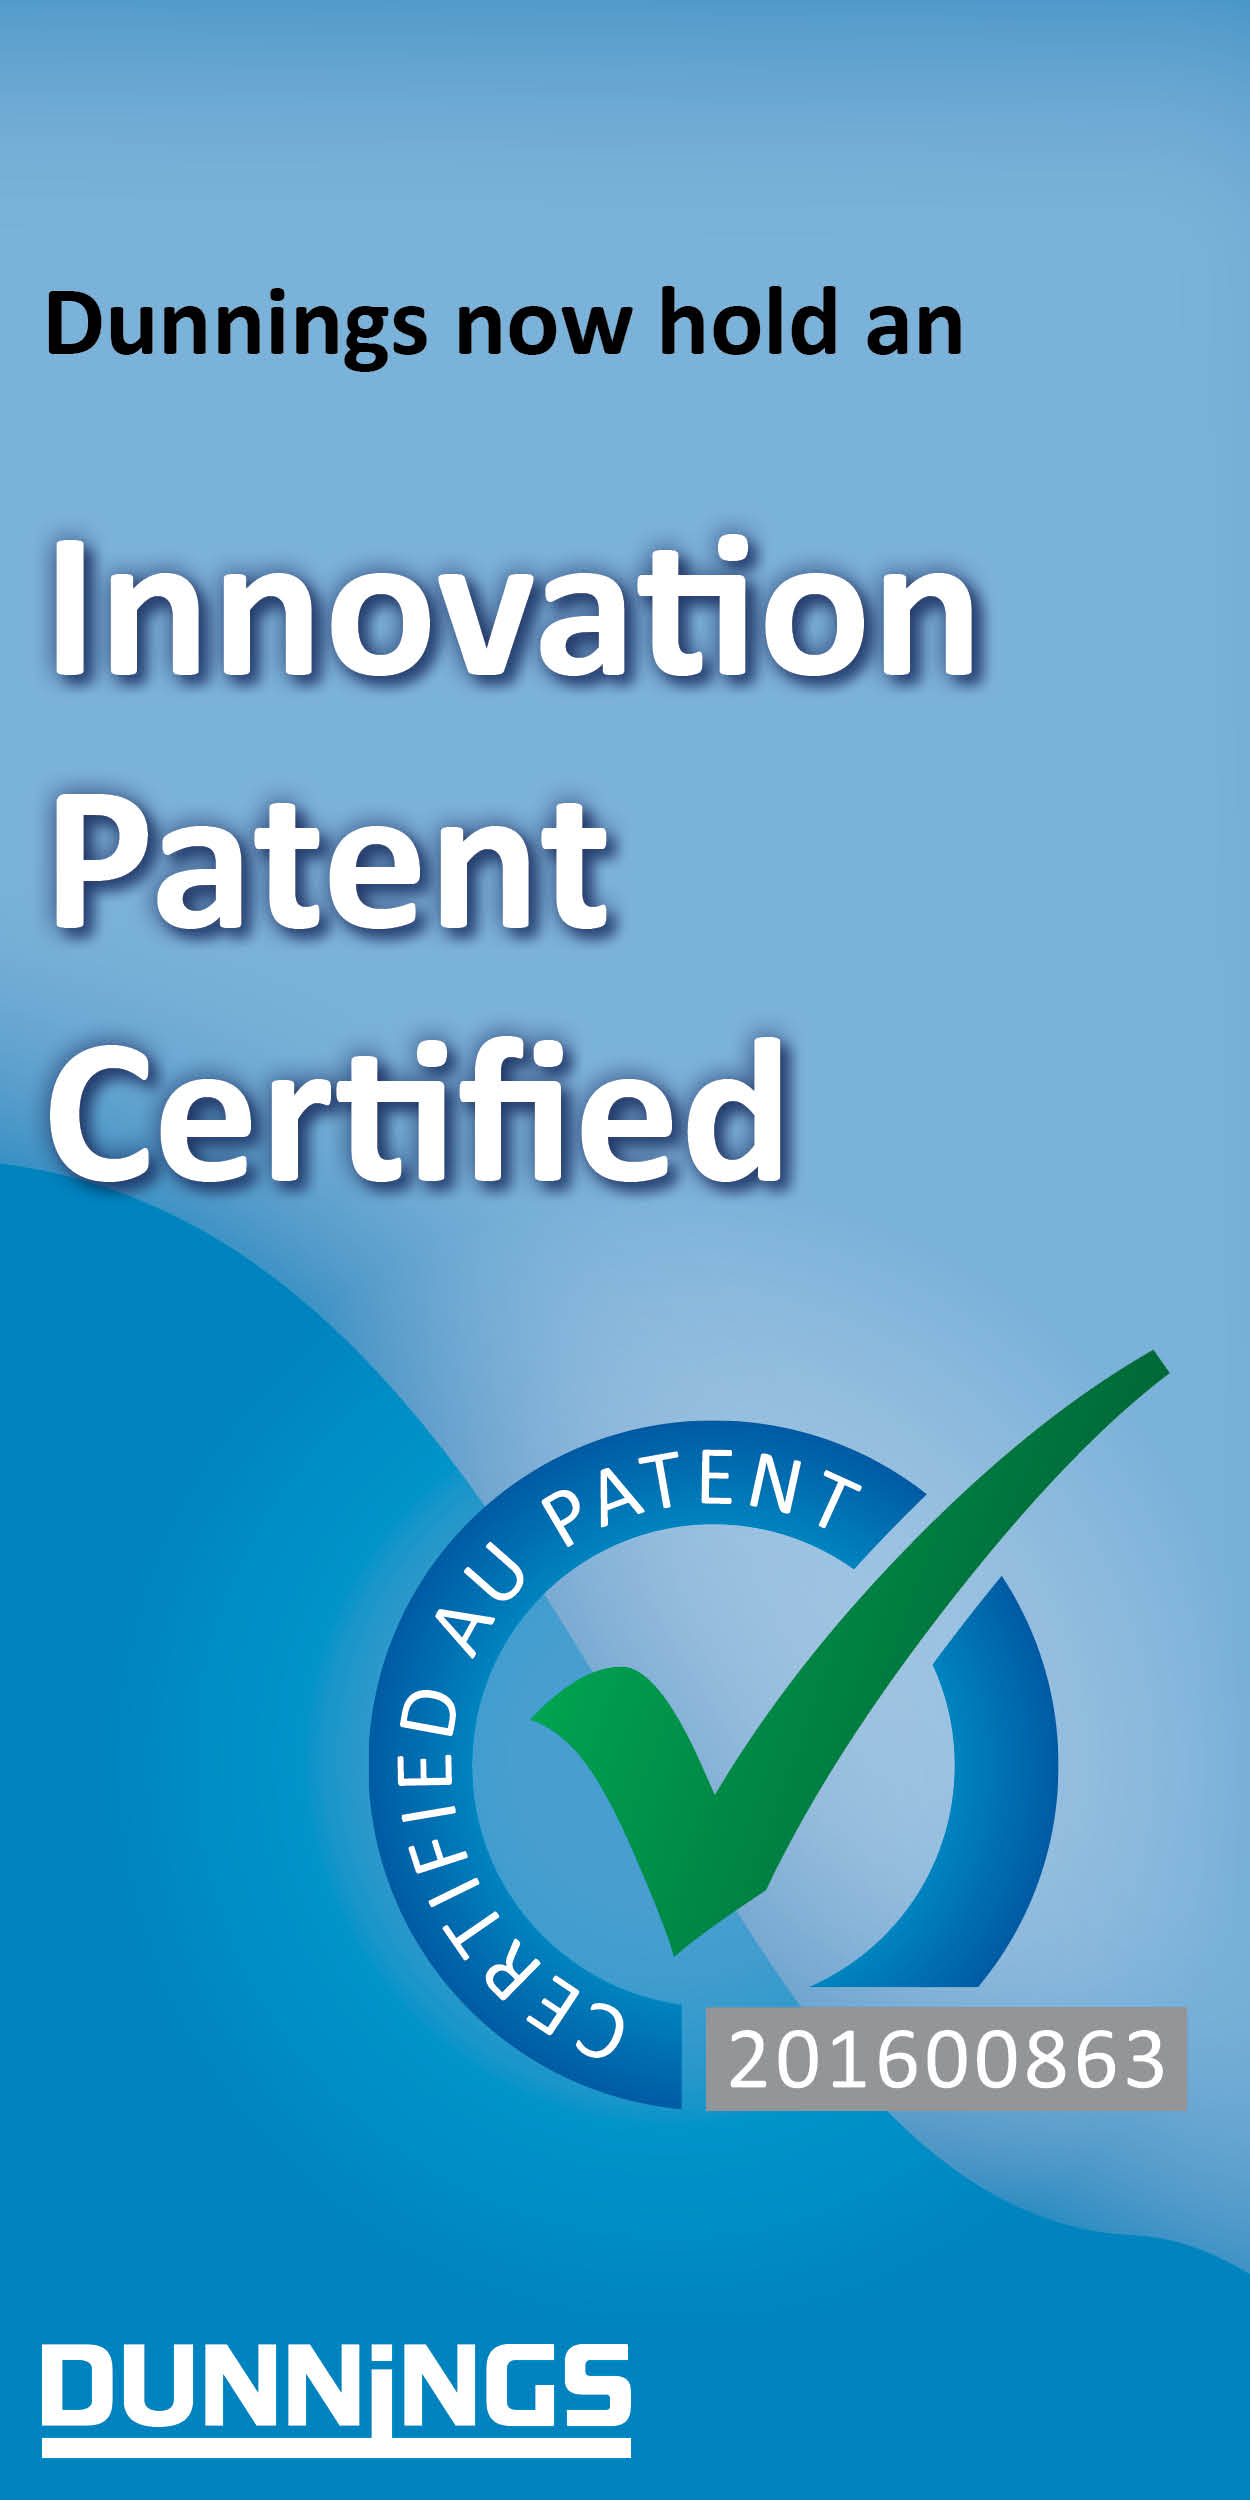 InnovationPatentCertified 600x1200